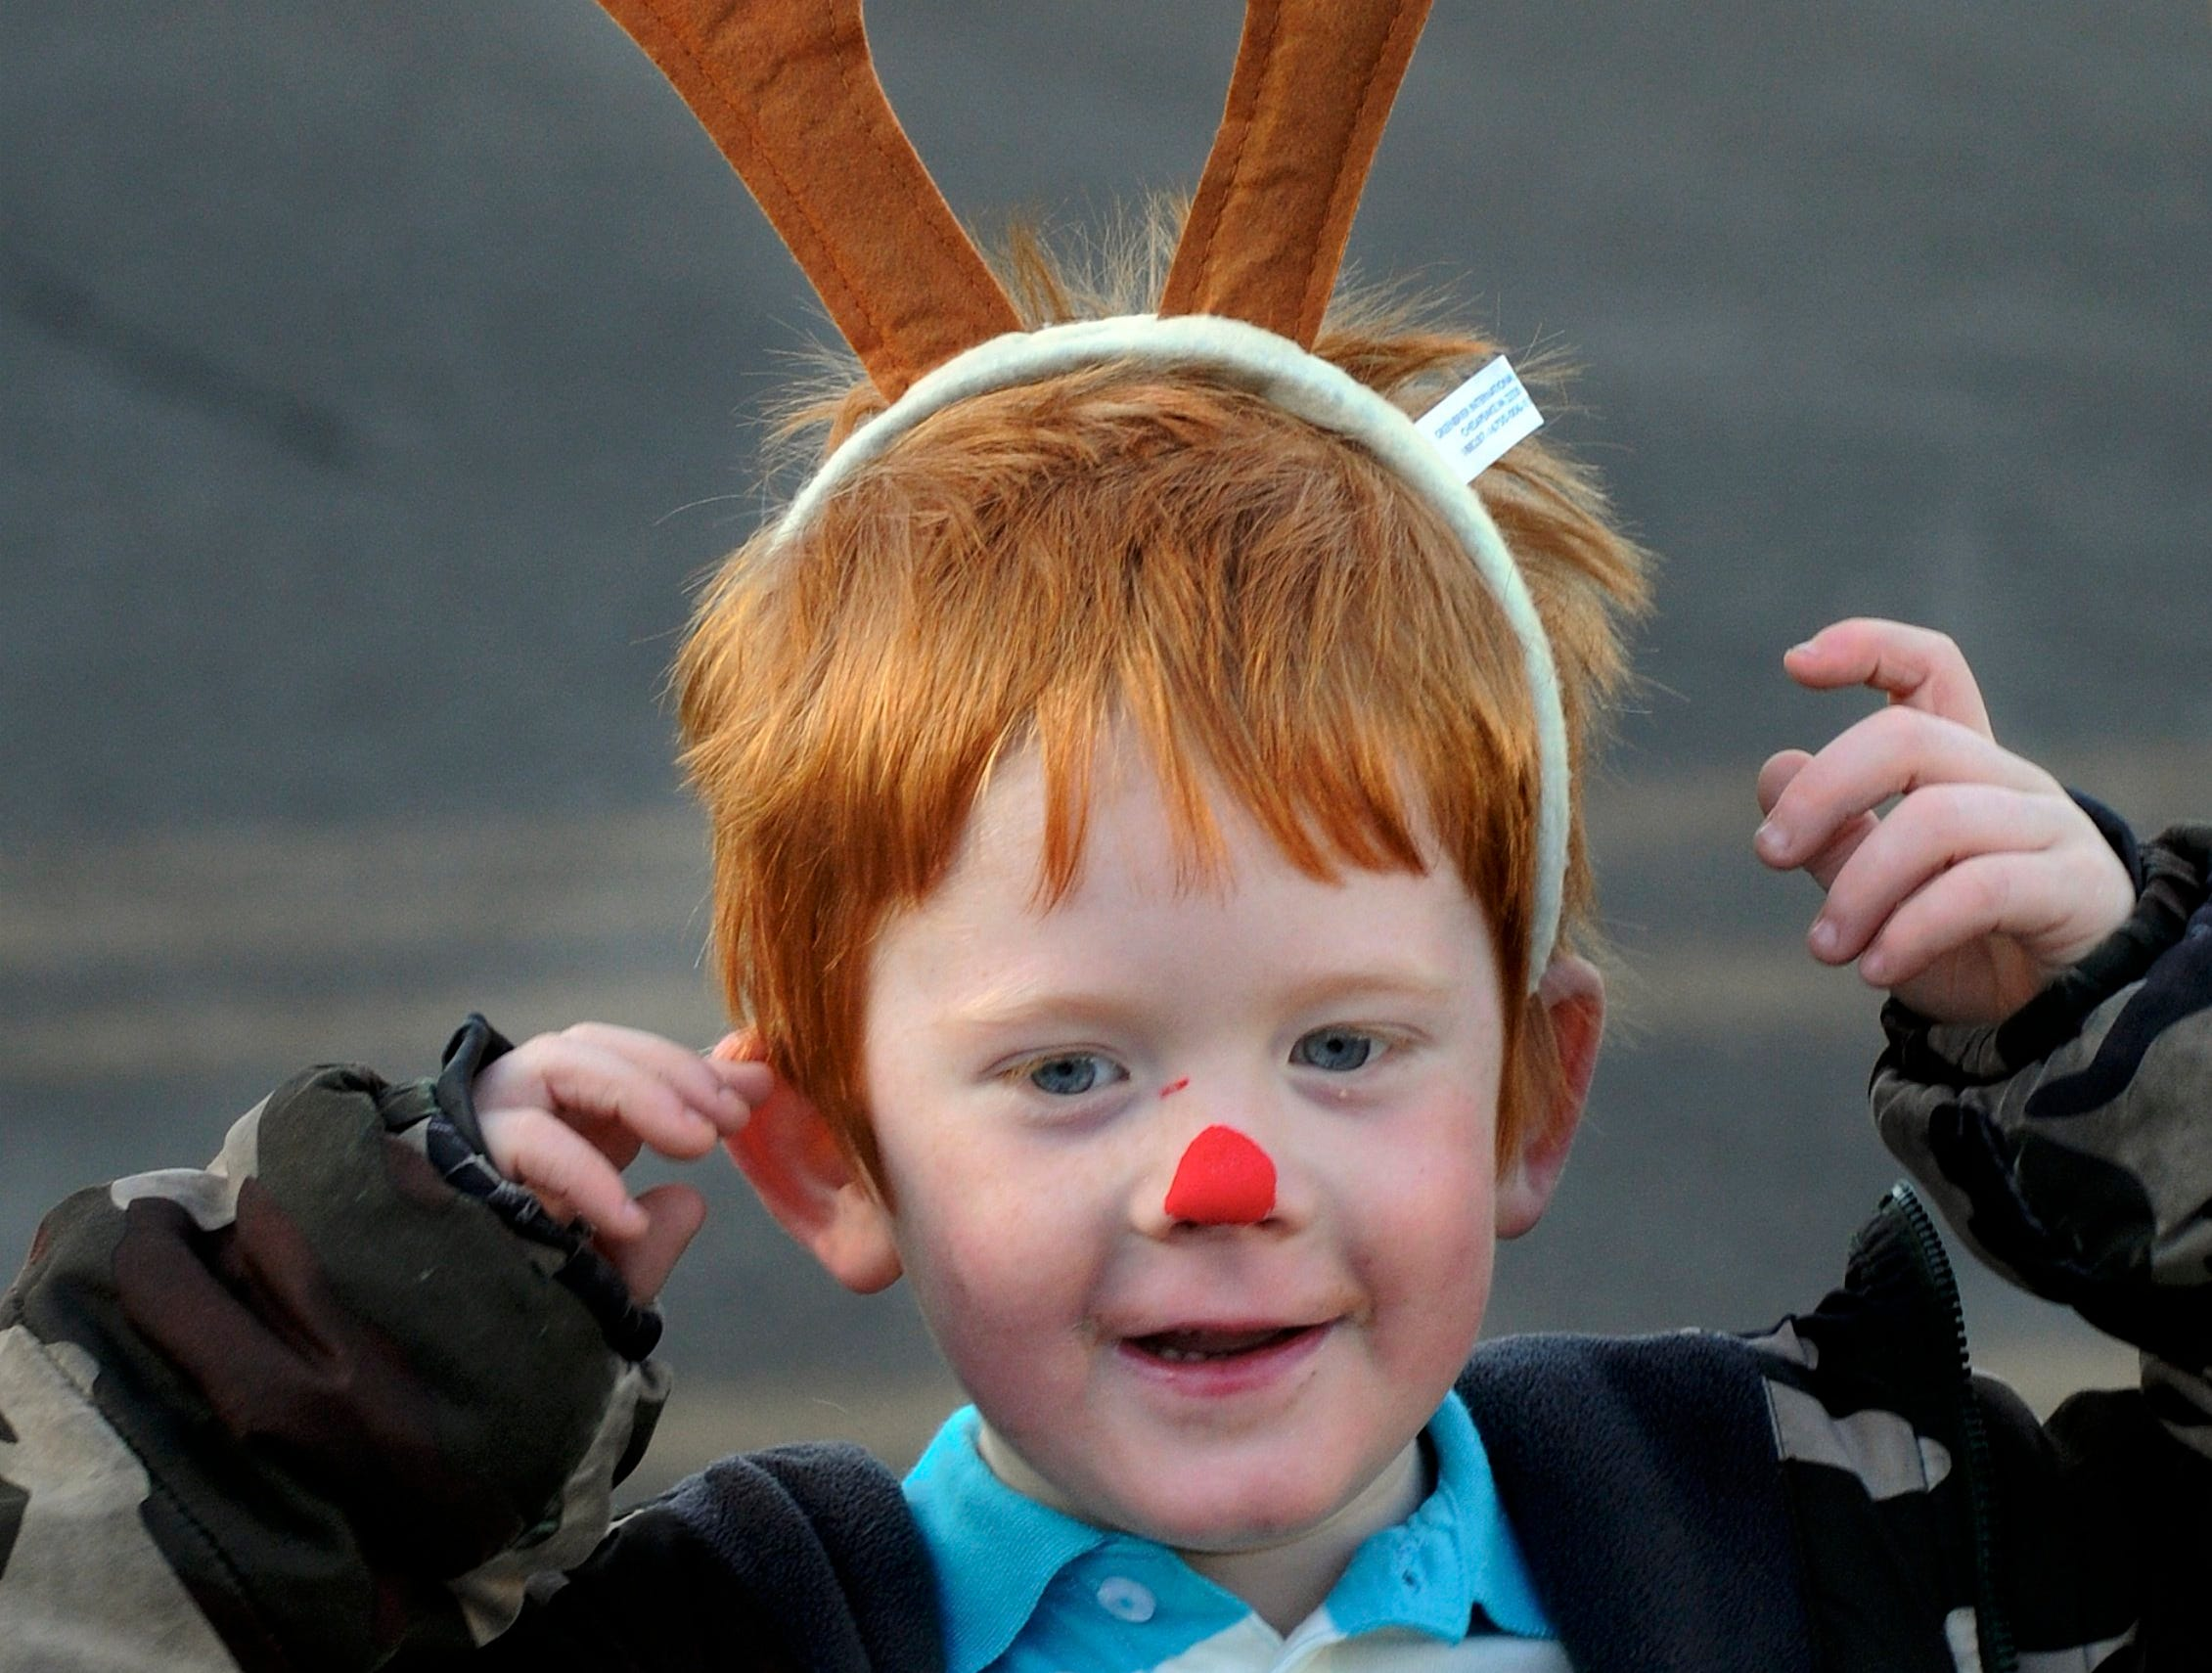 South Heights Elementary kindergarten student Ethan Mayes pauses for a antler adjustment as he takes part in the schools annual Christmas Parade Thursday morning.  12-19-2013